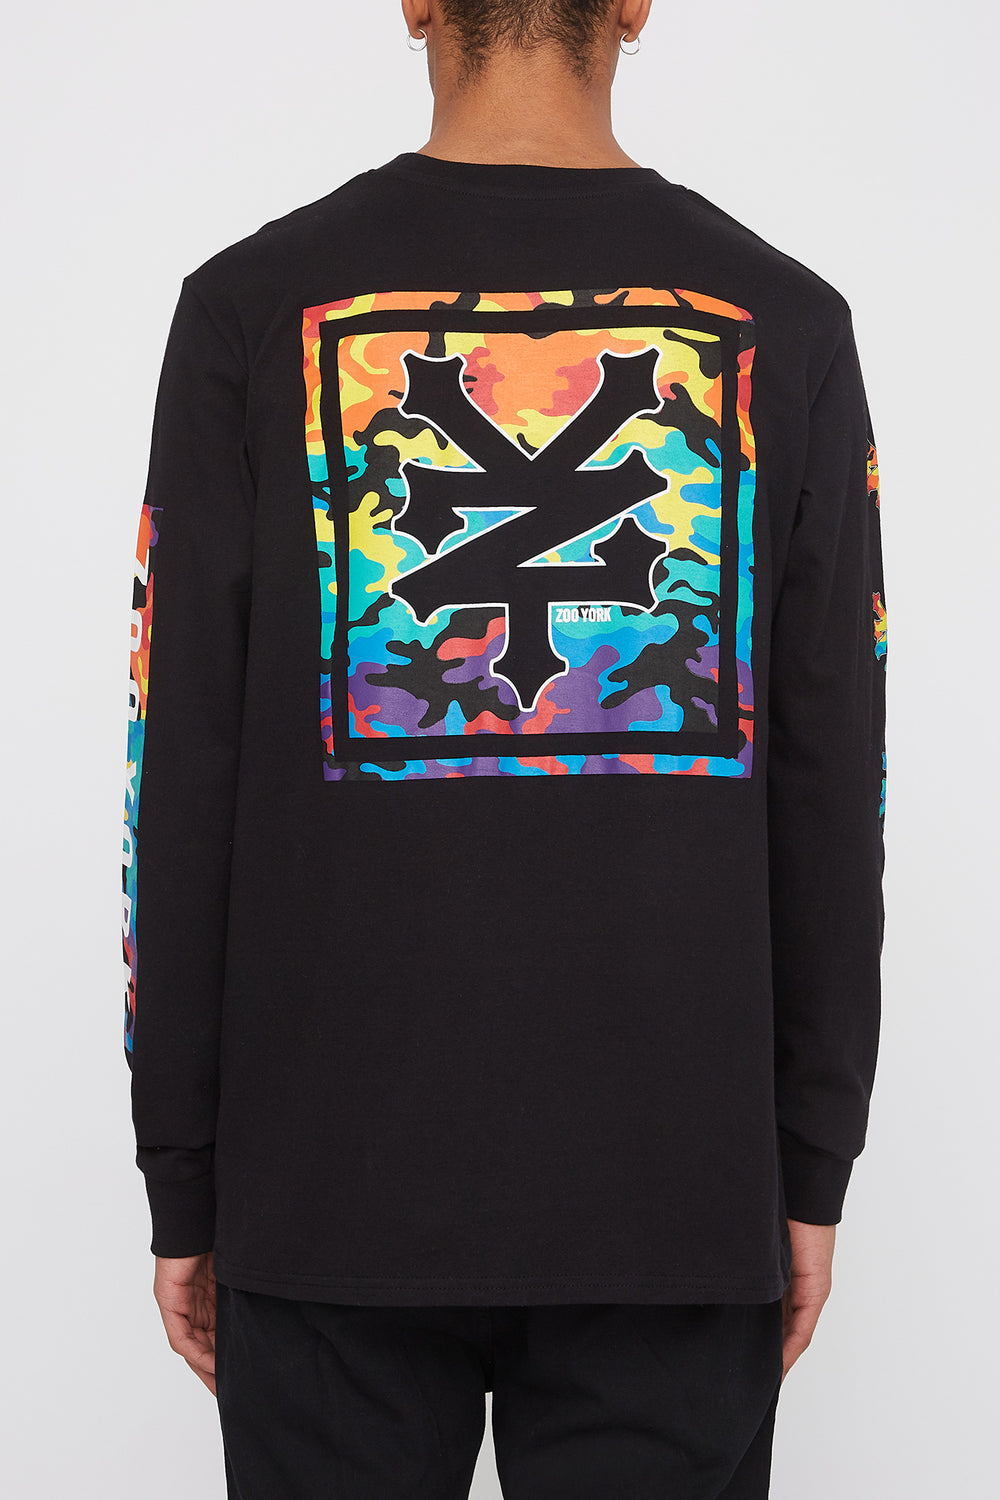 Zoo York Mens Rainbow Camo Logo Long Sleeve Shirt Black